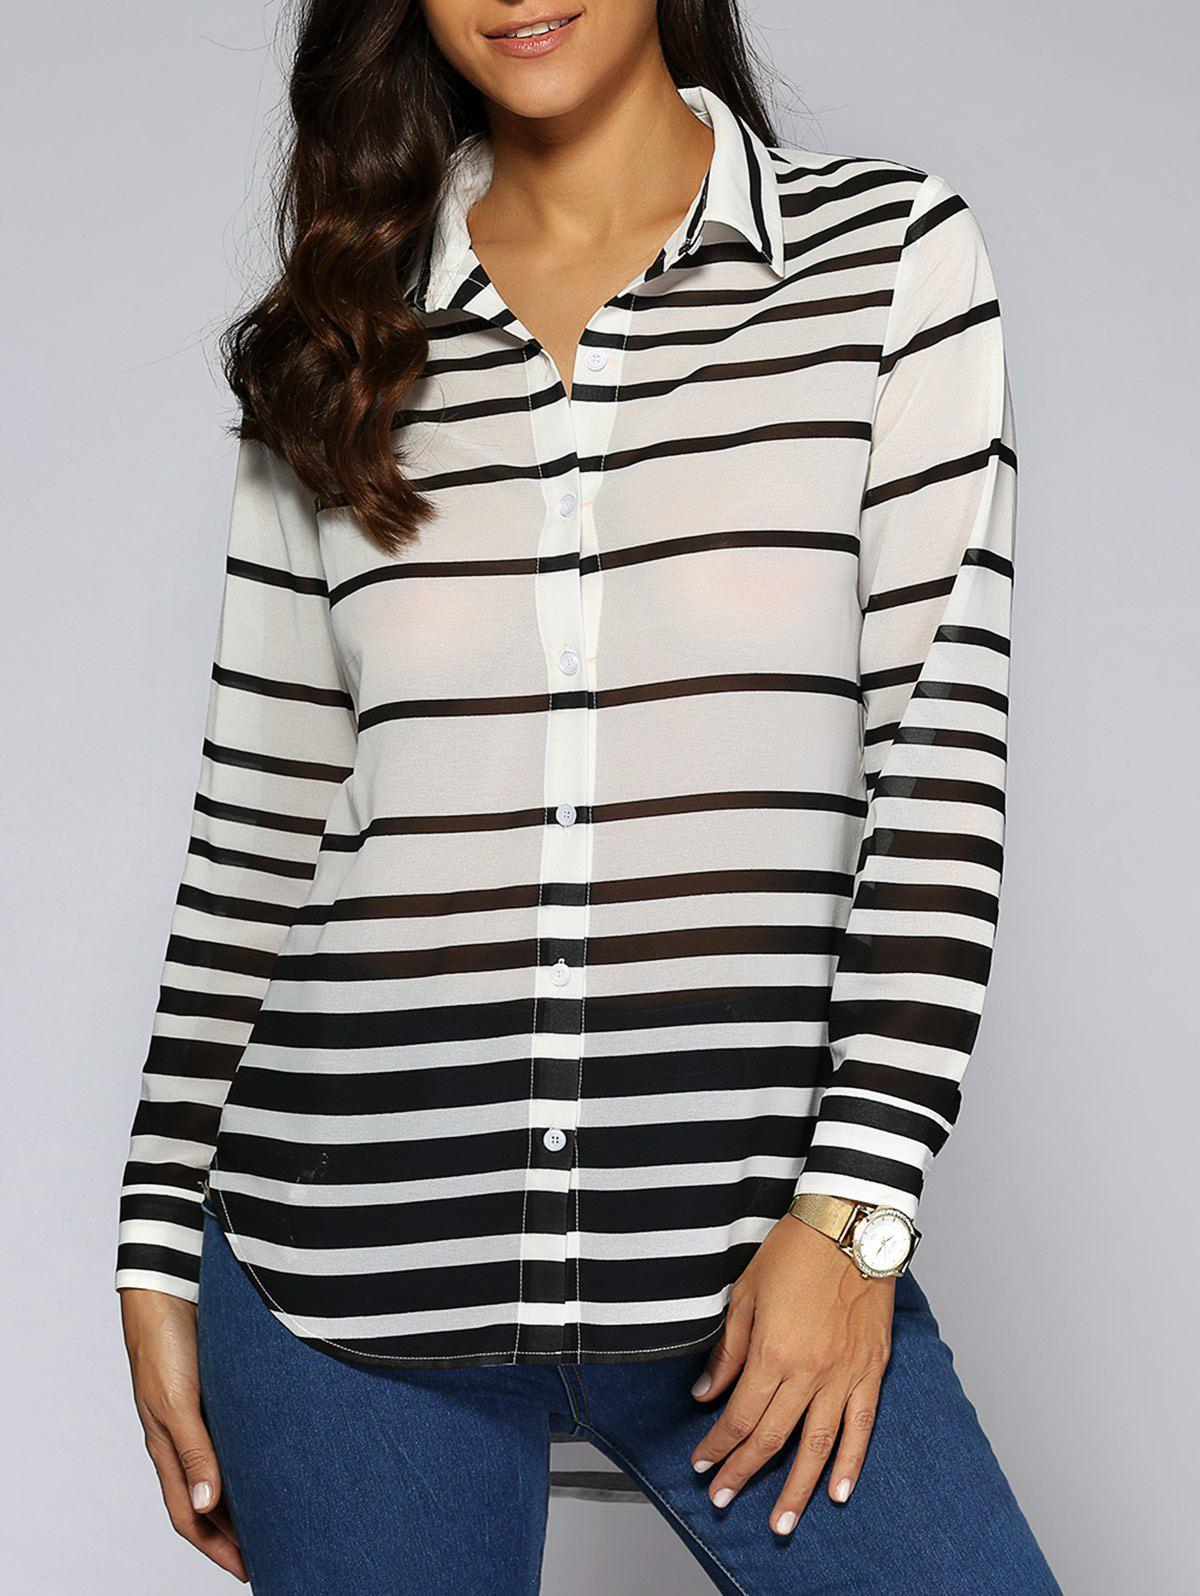 Buy Striped High Low Hem Shirt WHITE/BLACK